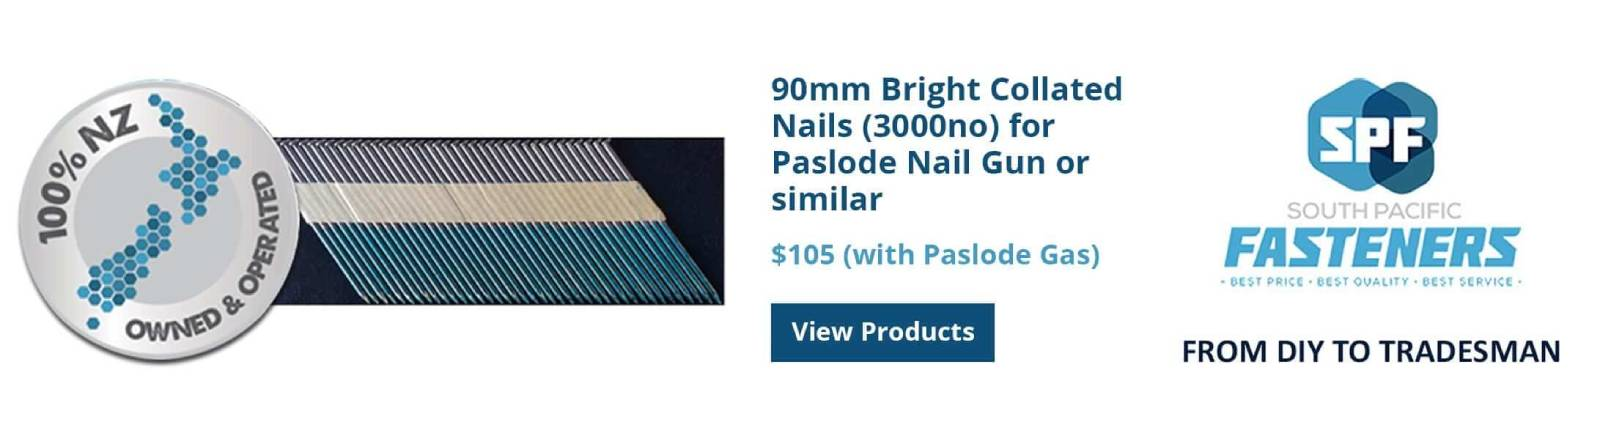 Bright Collated Nails - SP Fasteners